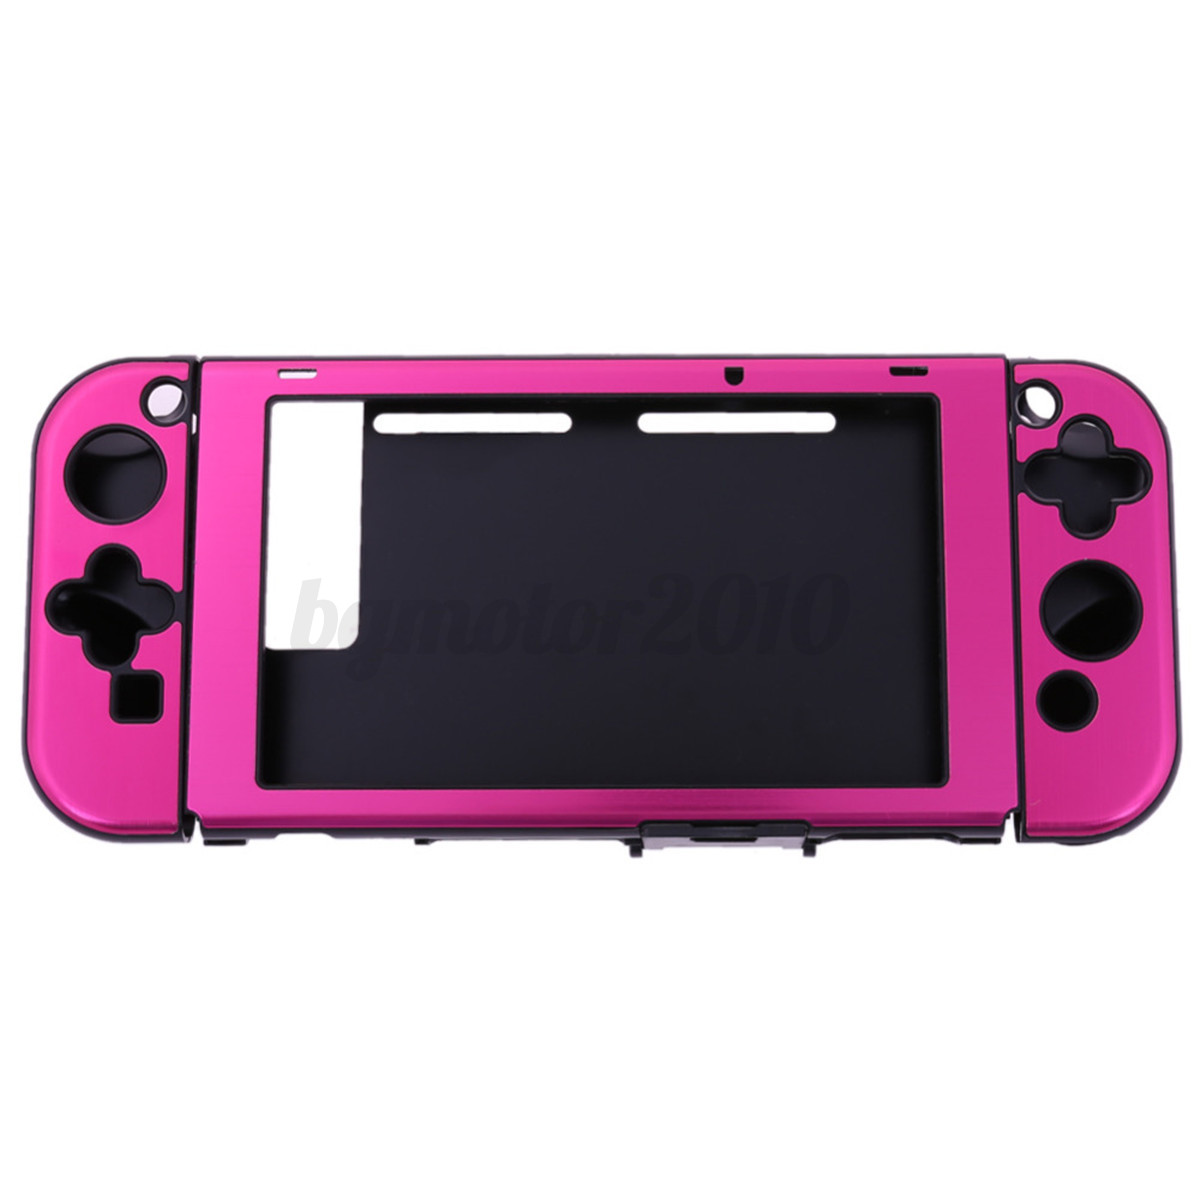 housse tui coque protection replacement full set pour nintendo switch console ebay. Black Bedroom Furniture Sets. Home Design Ideas